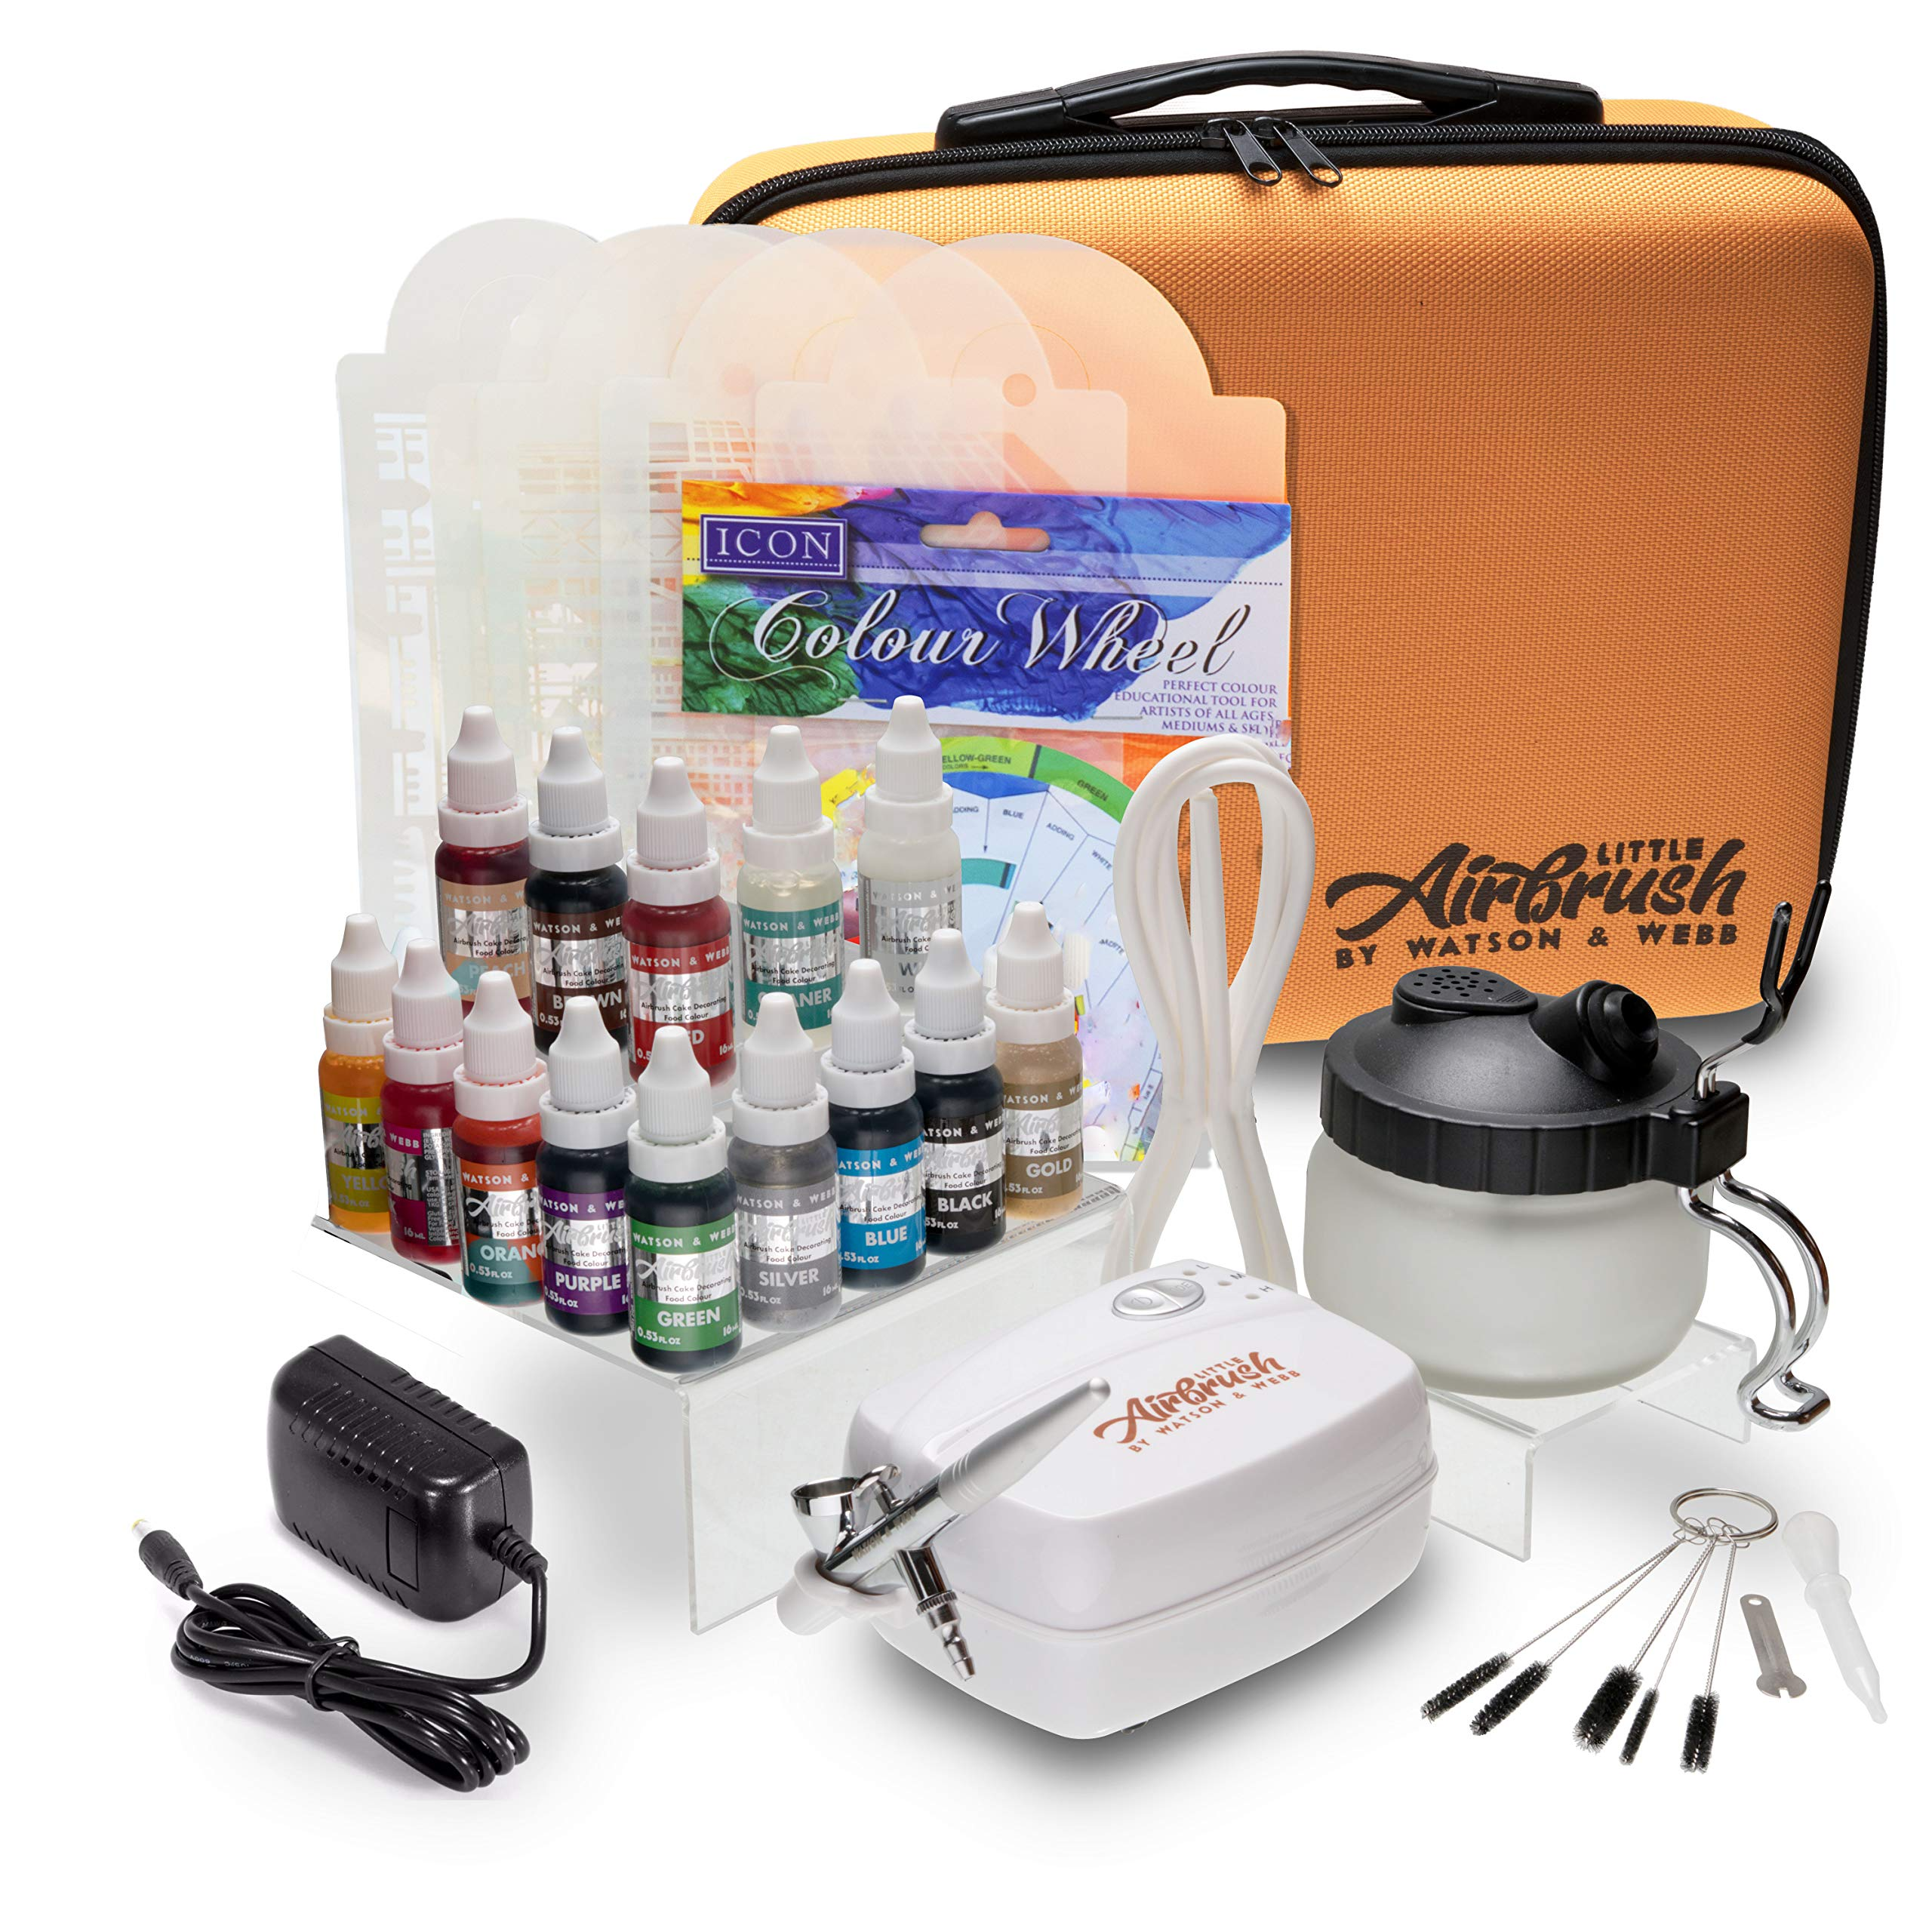 Airbrush Cake Decorating Kit - Watson and Webb Little Airbrush Including 13 Colors, Stencil, 1 x Airbrush Cleaning Solution and Pot, Cleaning Brushes and Case by Watson and Webb